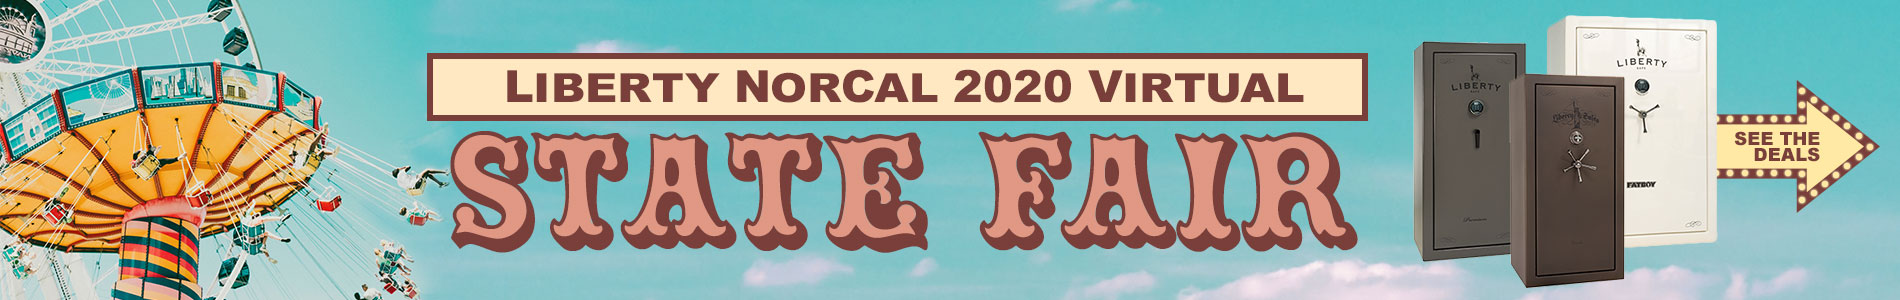 Liberty NorCal 2020 Virtual State Fair - See the Deals